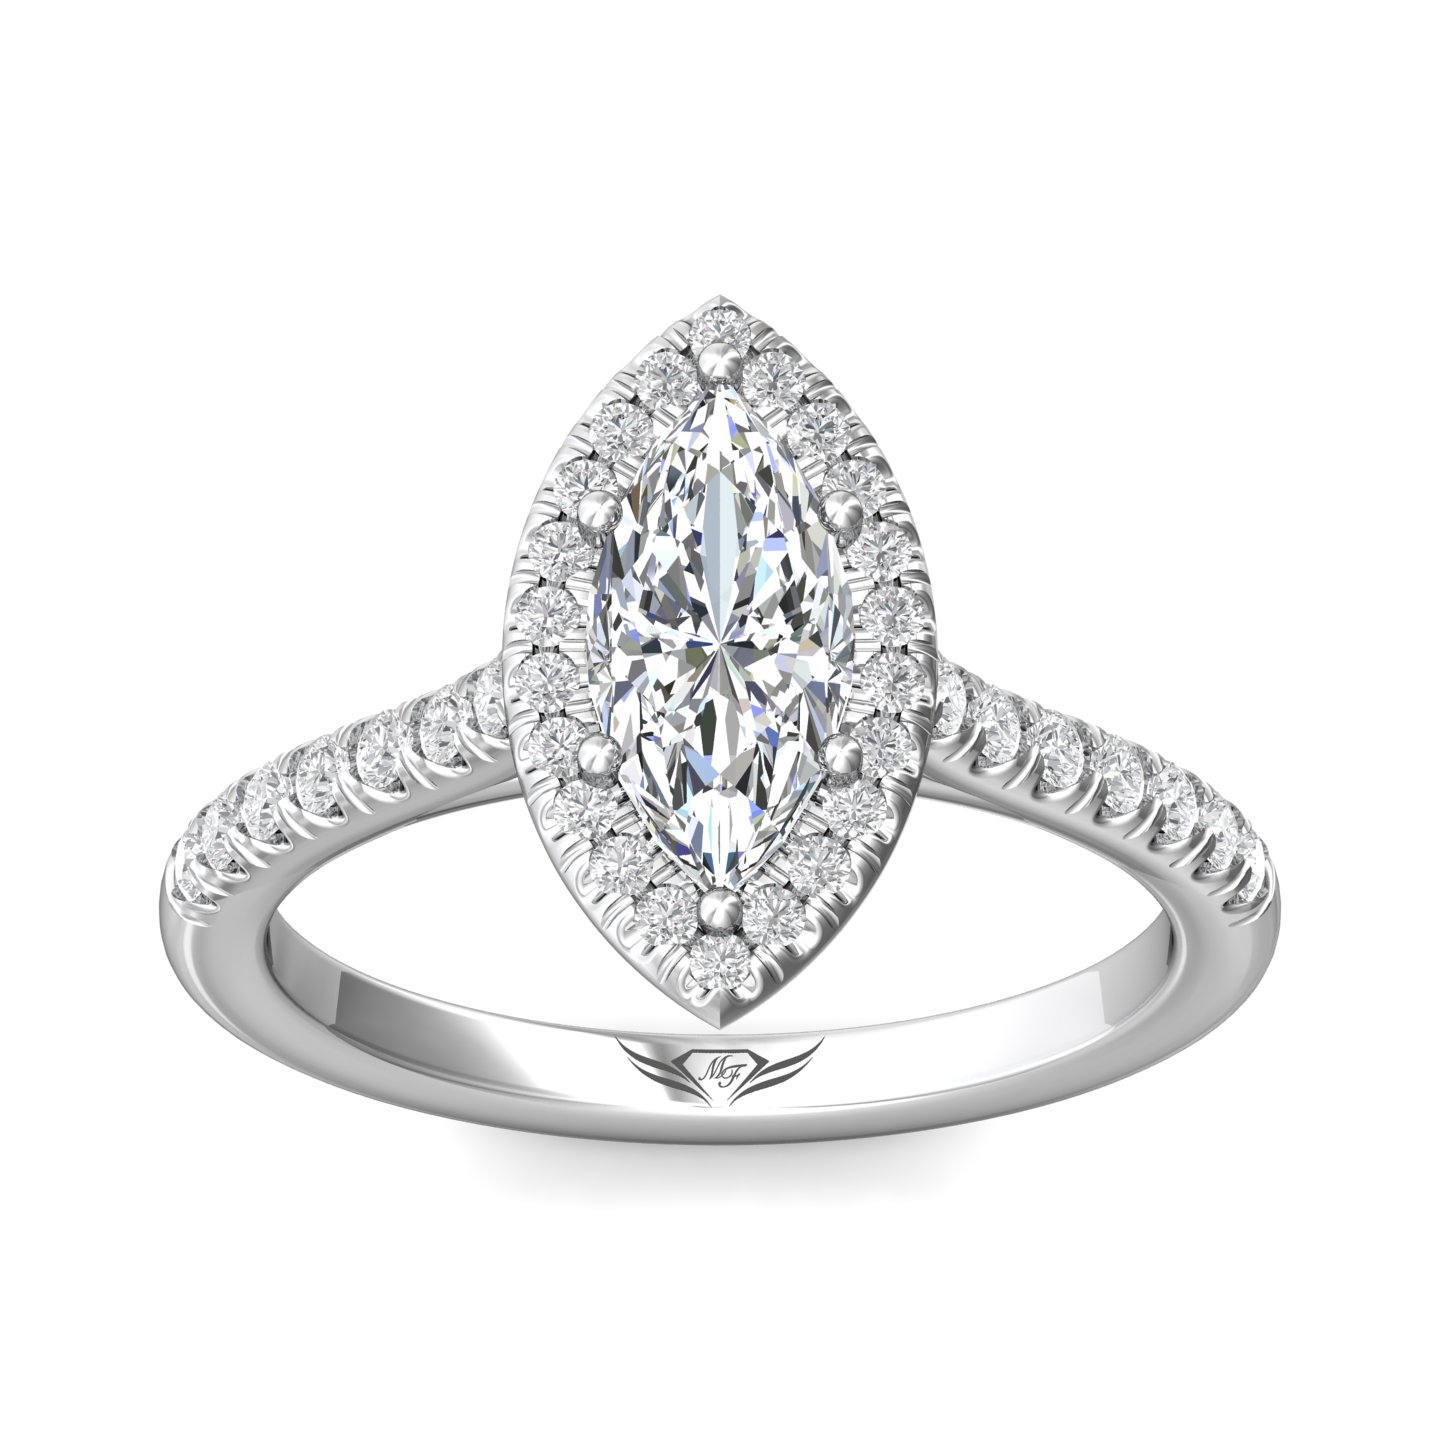 14K White Gold FlyerFit Micropave Halo Engagement Ring Image 3 Grogan Jewelers Florence, AL